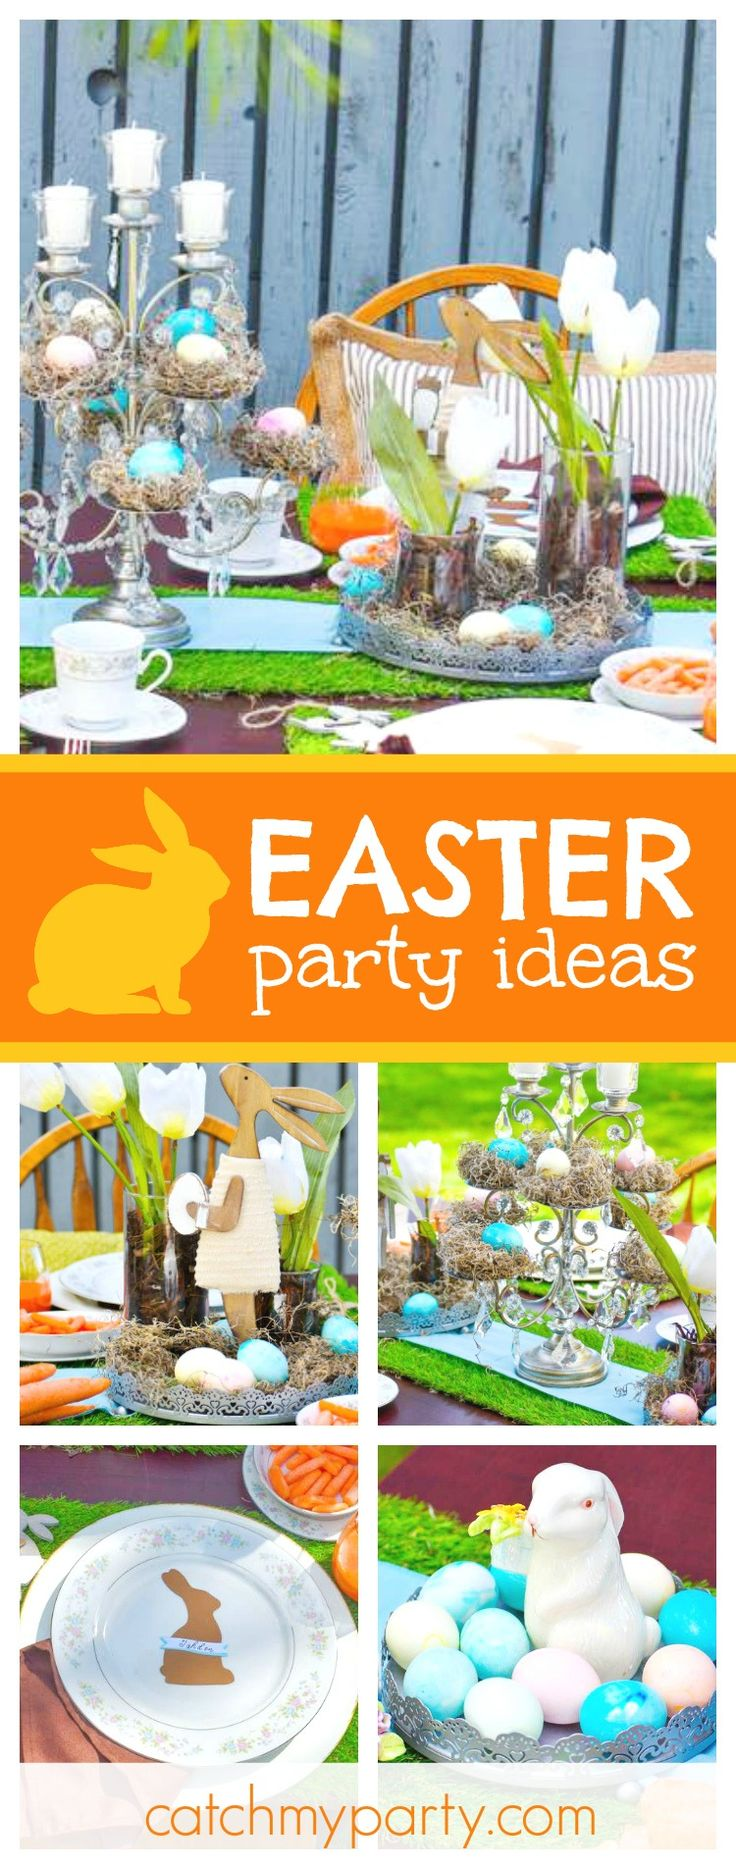 Take a look at this cute Easter Brunch! The table settings are so pretty!! See more party ideas and share yours at CatchMyParty.com